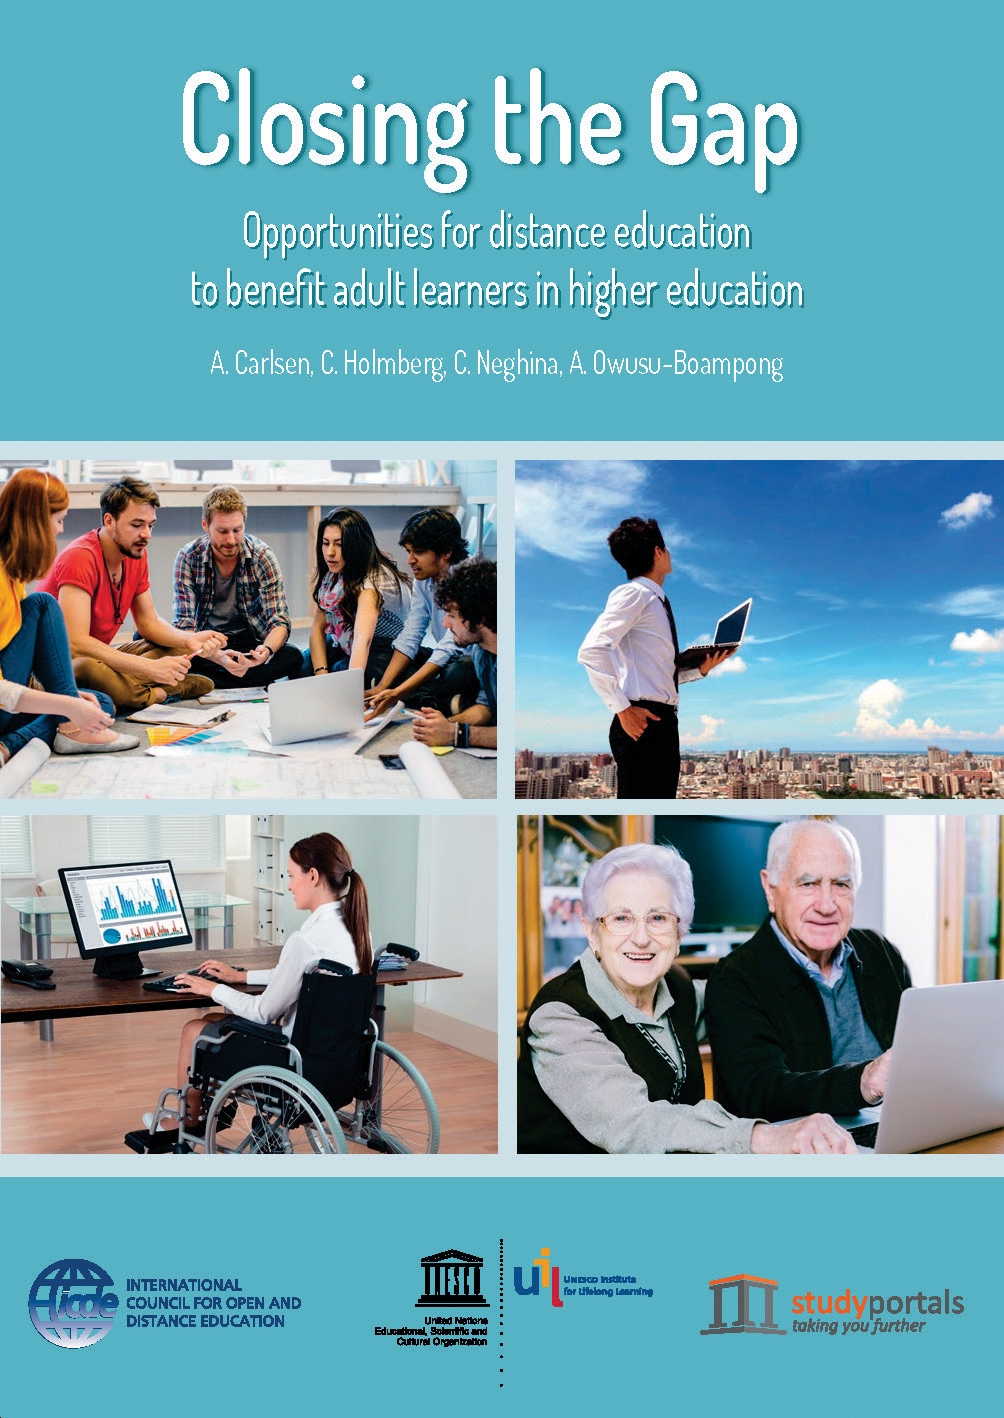 Adult and distance education